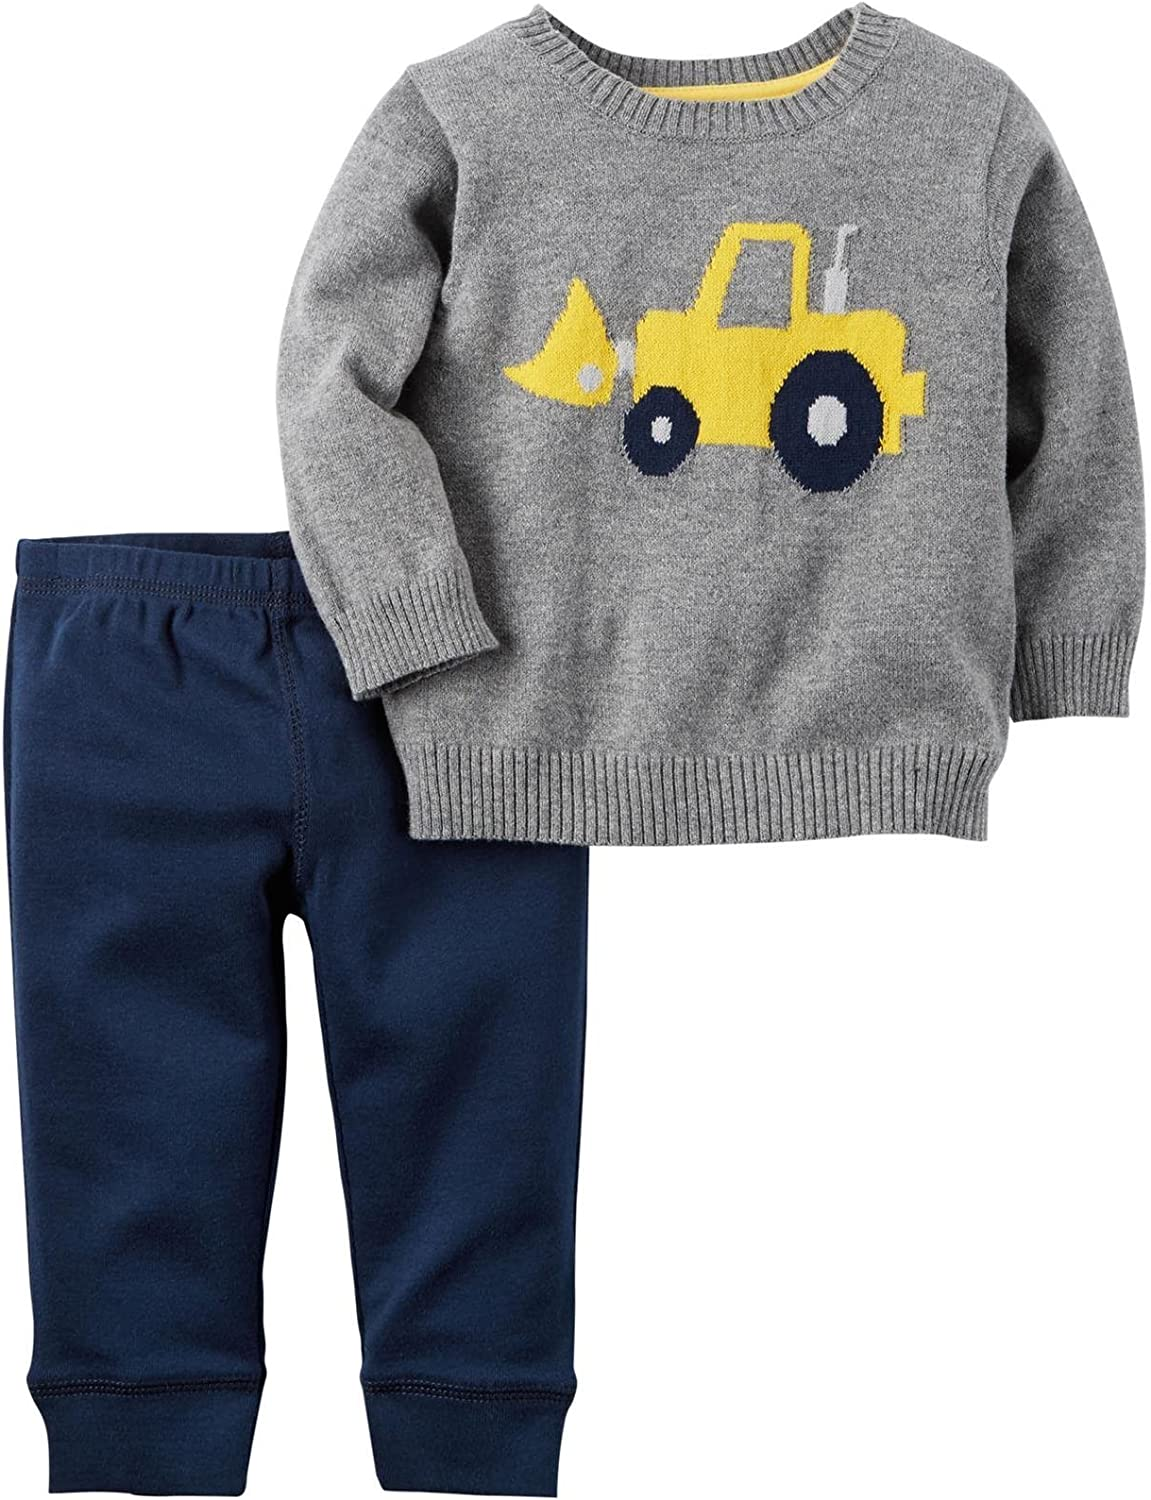 Carters Baby Boys 2 Pc Sets 121g857